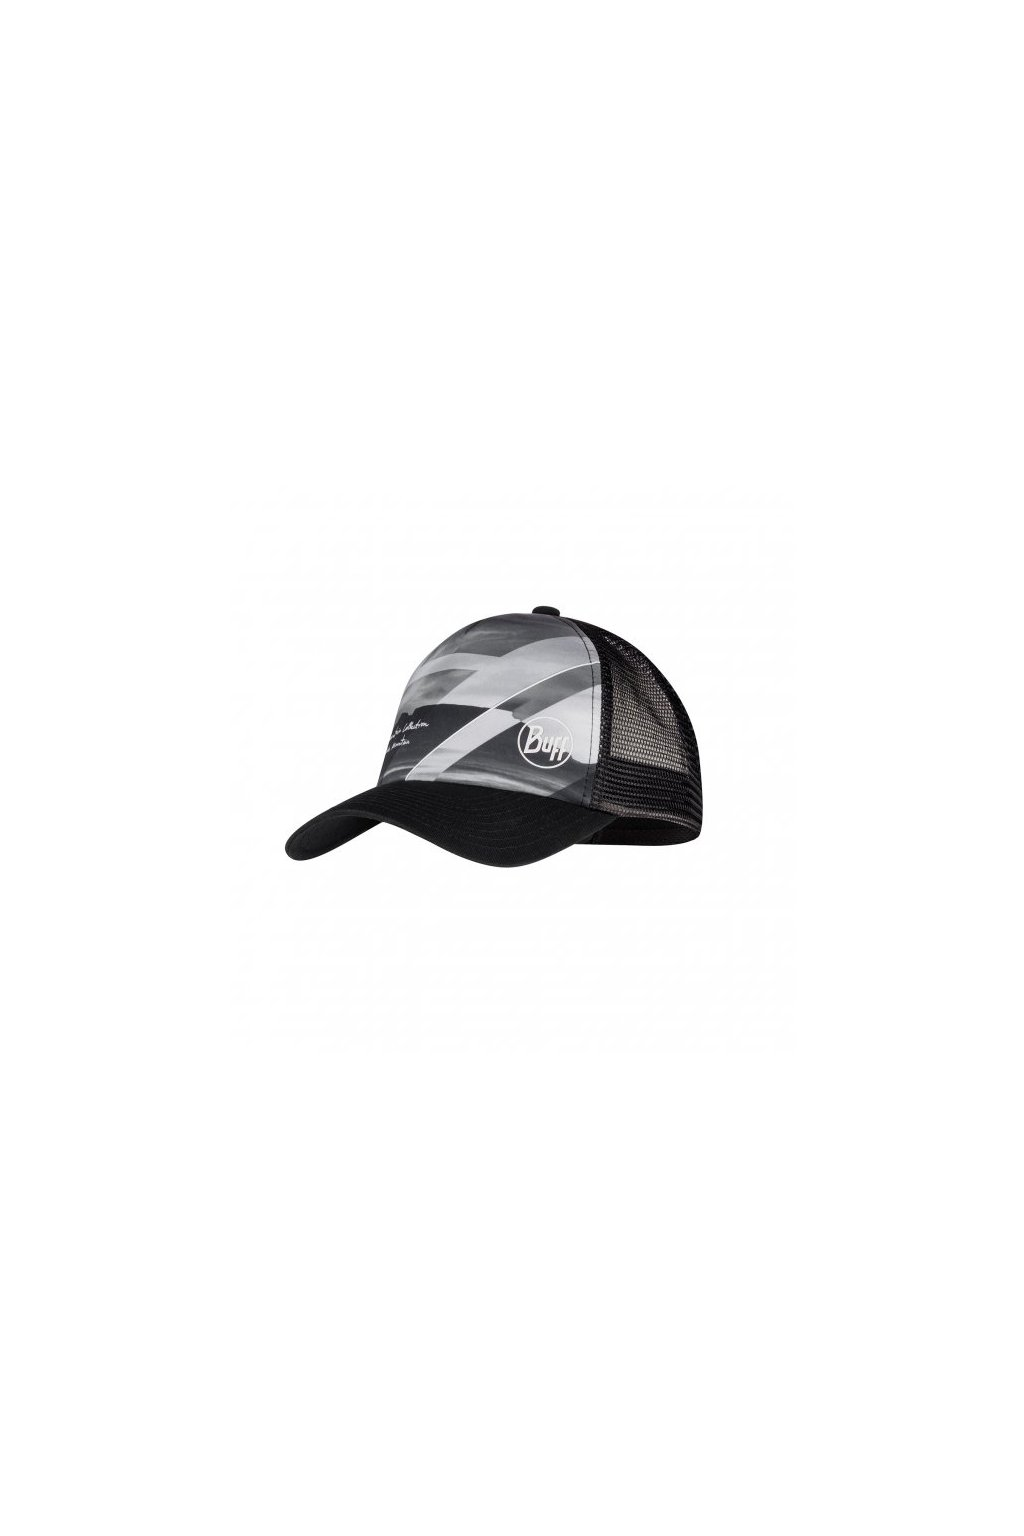 trucker cap table mountain black 1226009991000 ss20